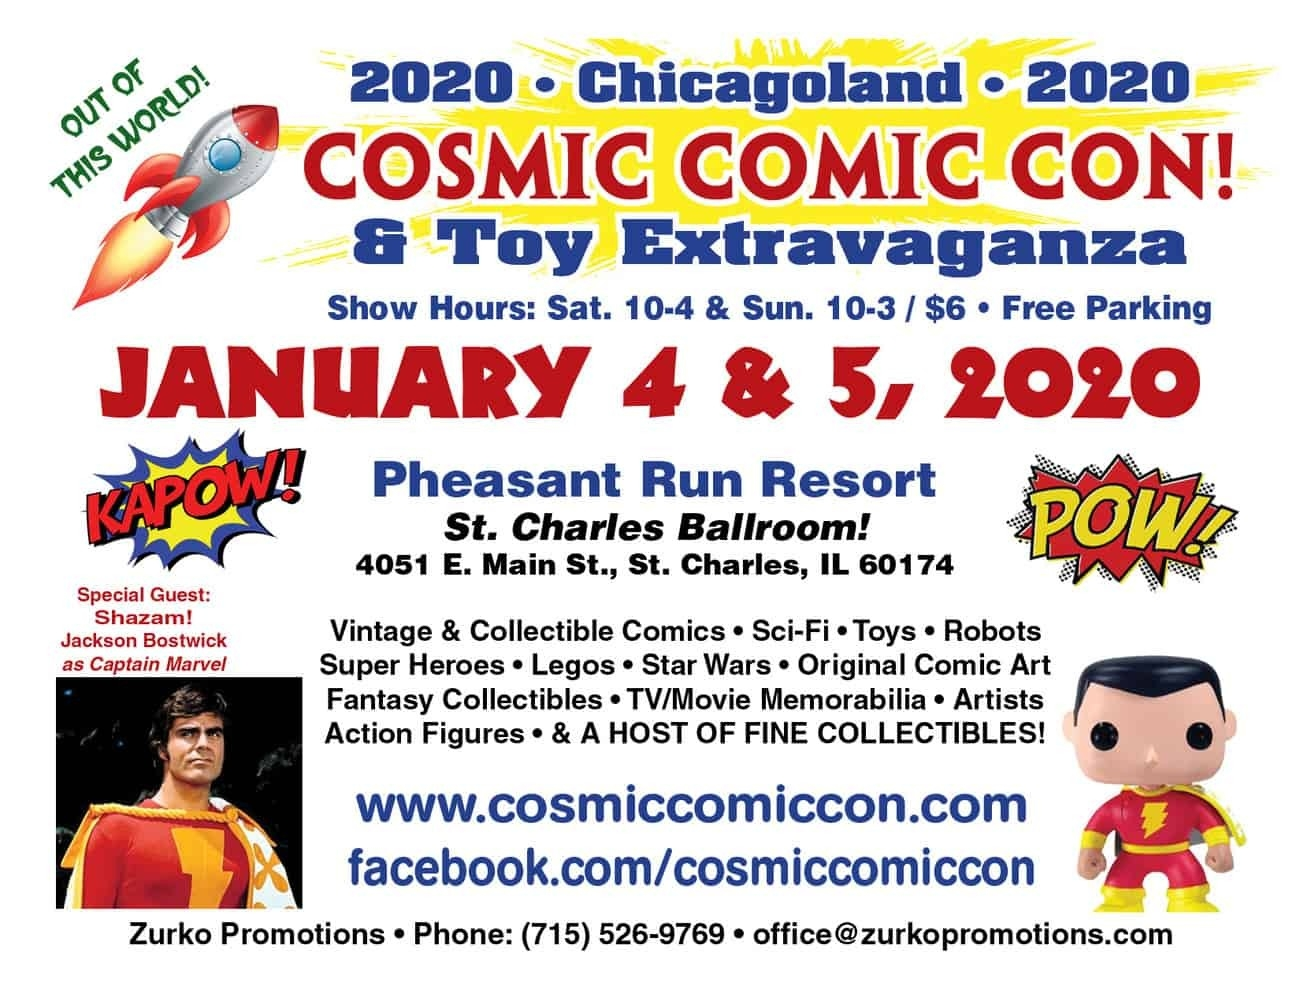 Cosmic Comic Con (January 2020) | Convention Scene-Las Vegas Event Calendar January 2020